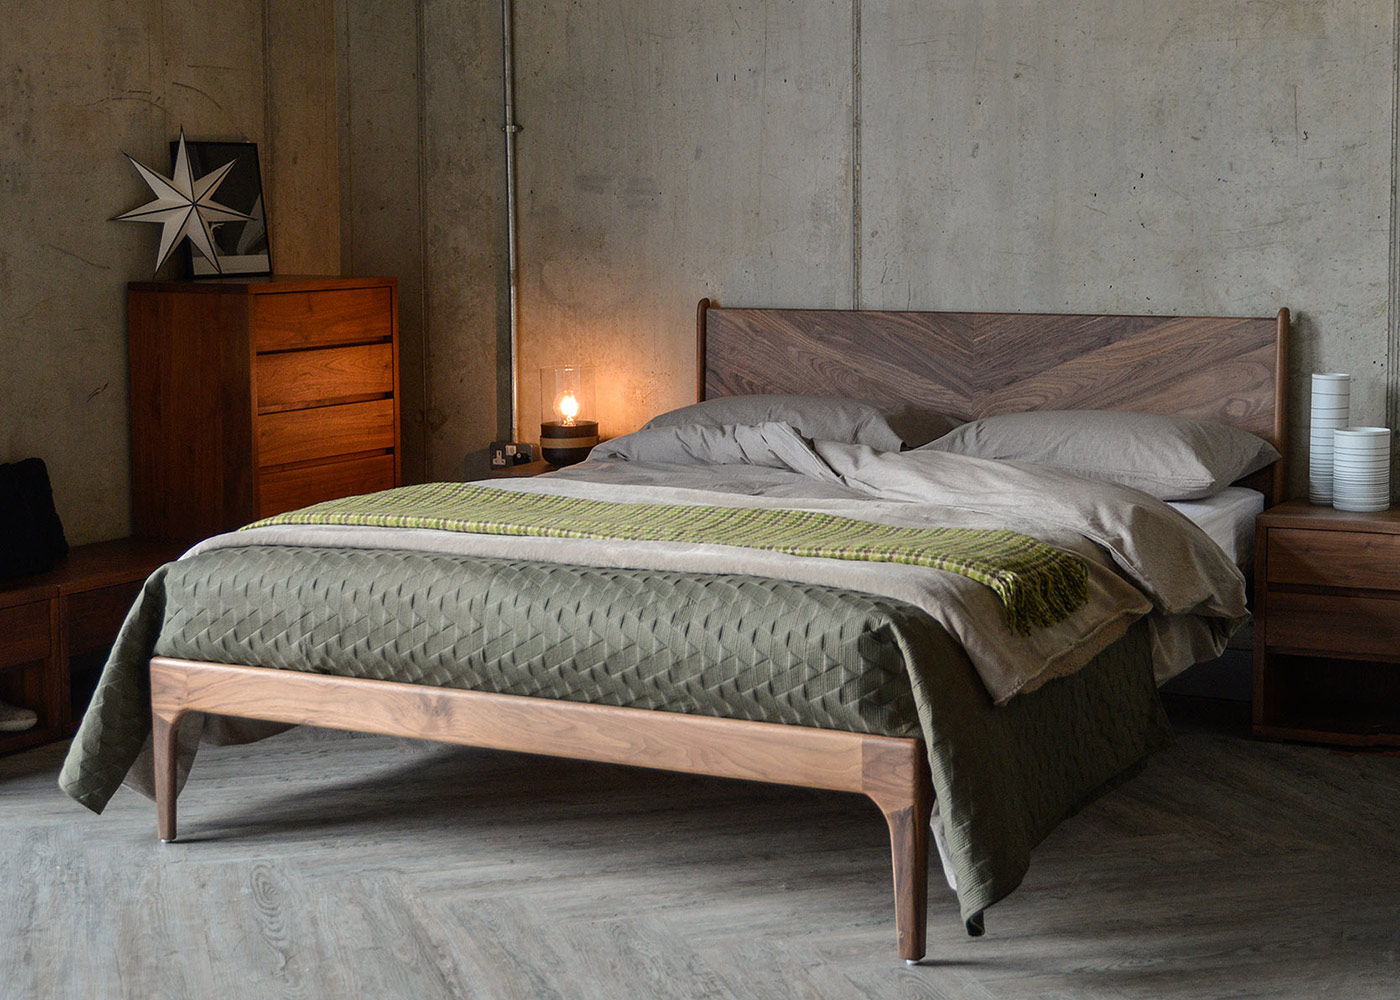 Mid-century style hand made Hoxton bed with its Chevron headboard shown in rich Walnut wood.